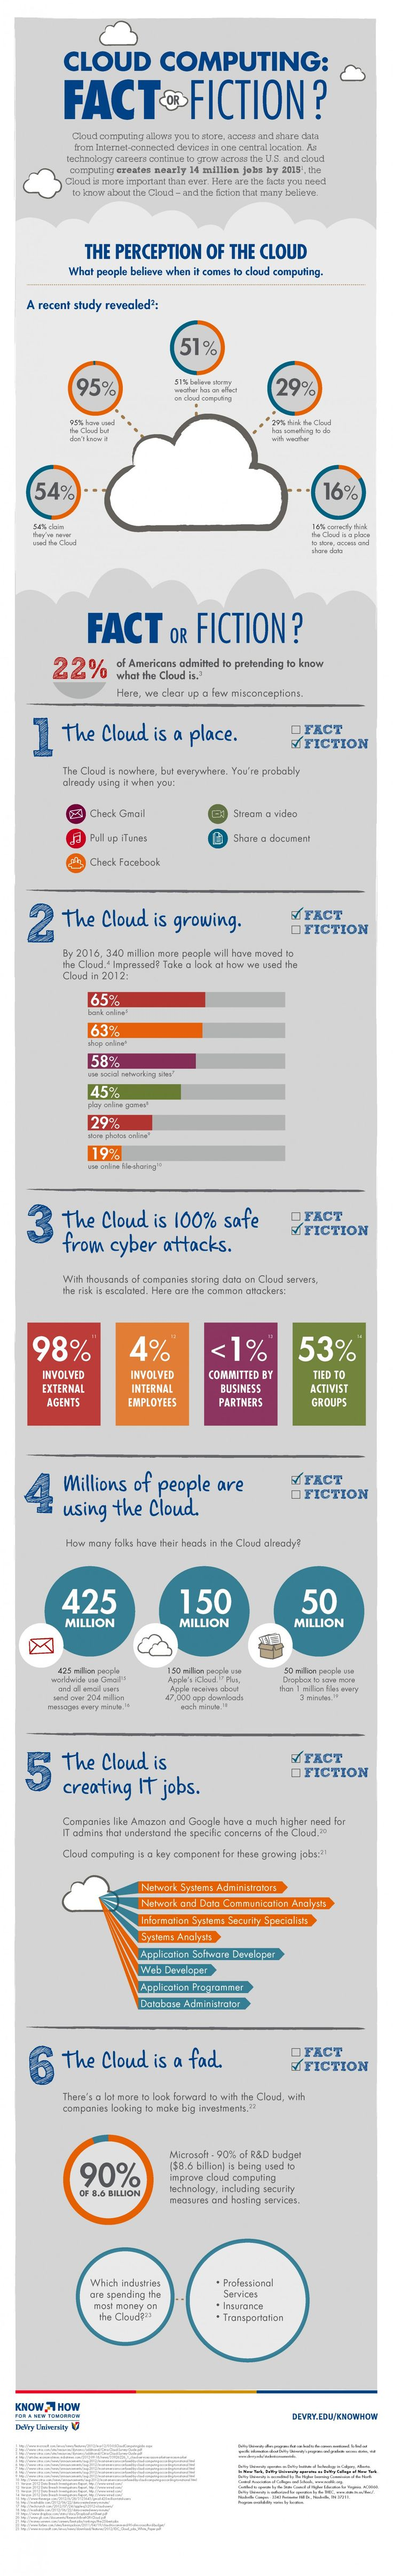 Cloud Infographic: Cloud Computing Fact Or Fiction